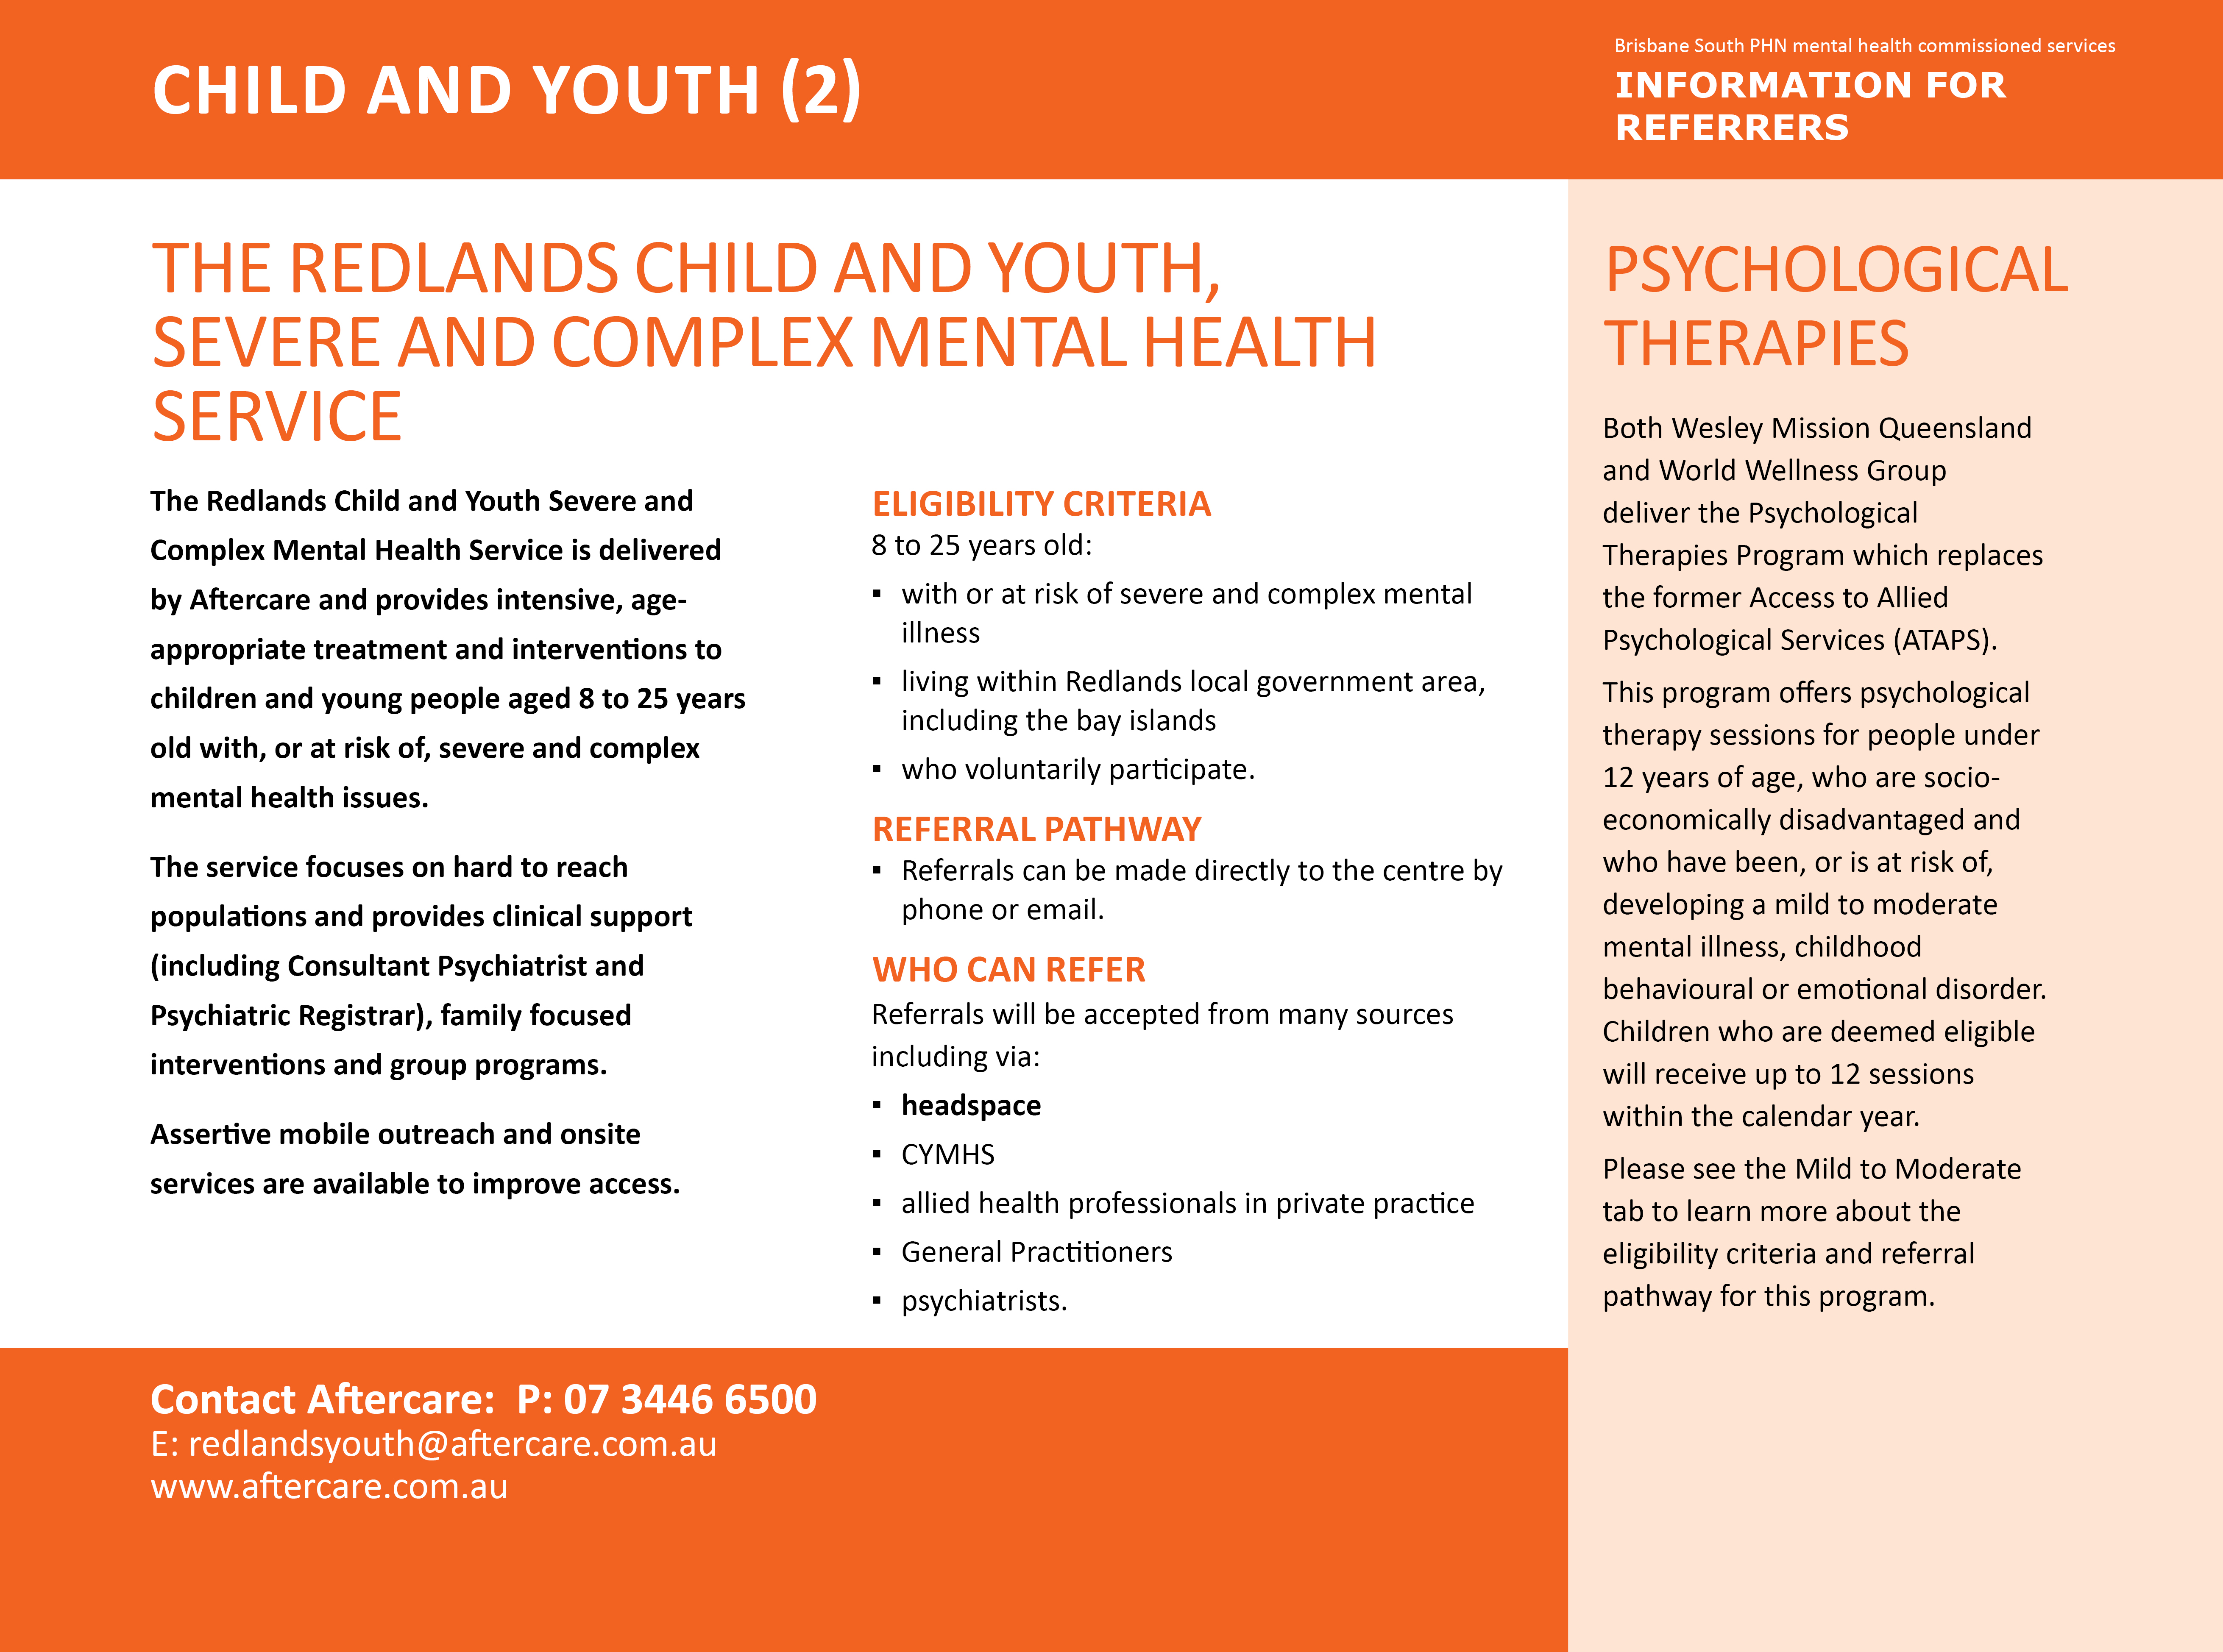 The Redlands Child and Youth, Severe and Complex Mental Health Service